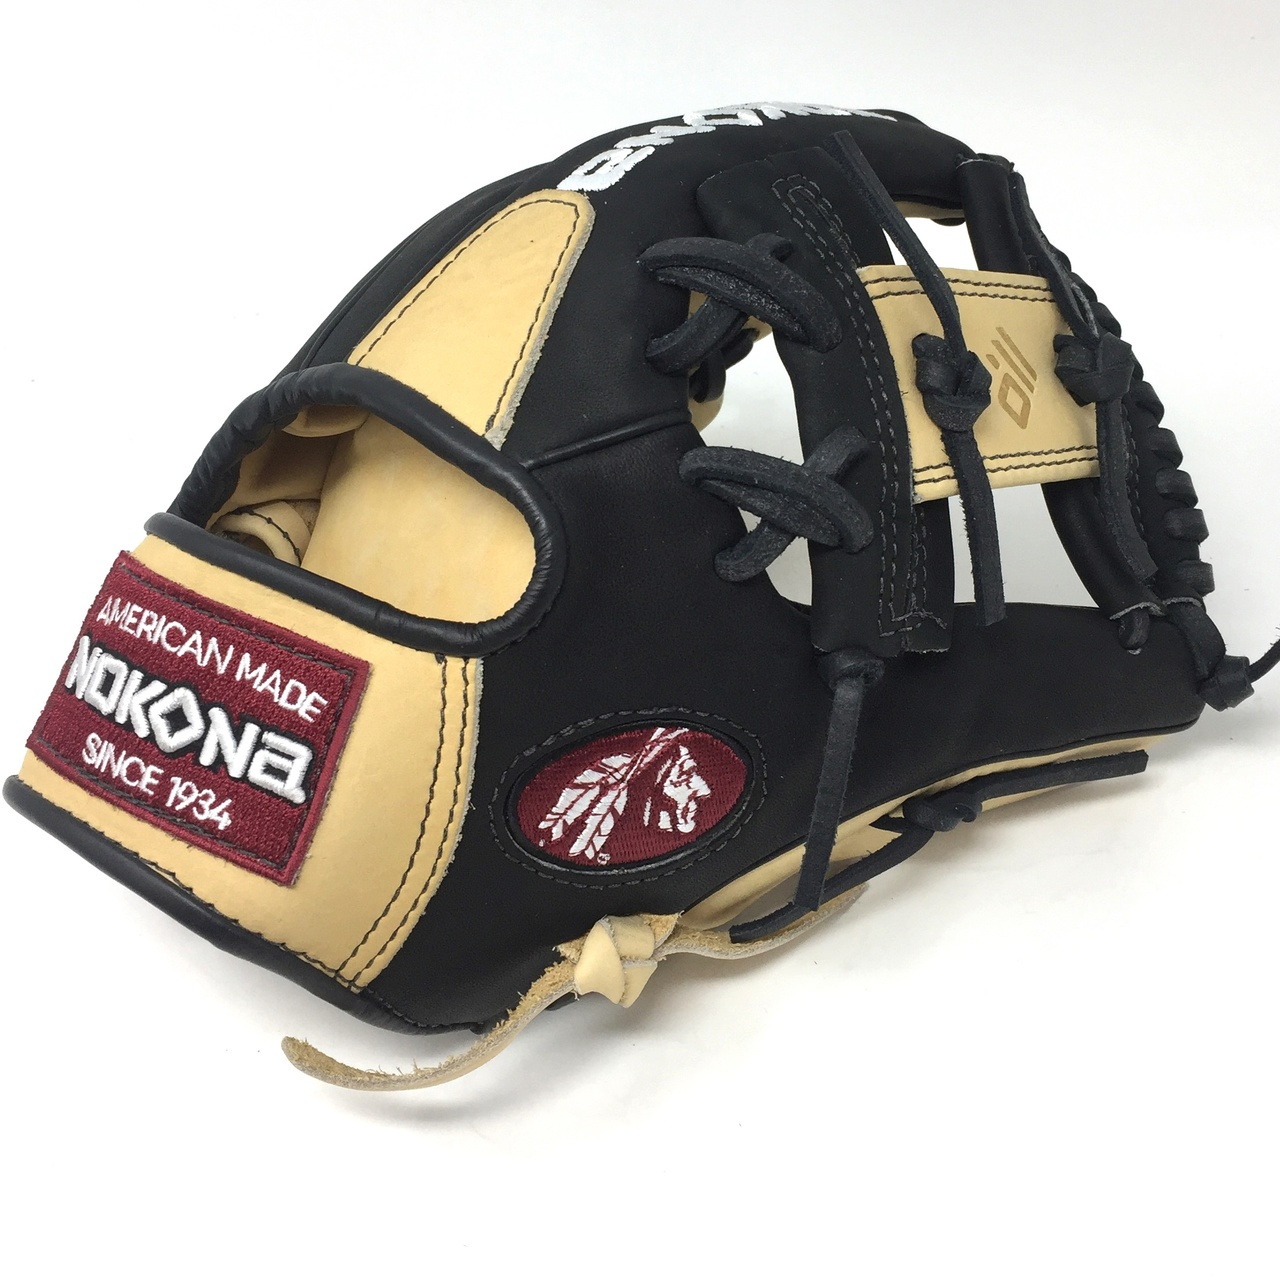 nokona-bison-black-alpha-baseball-glove-s-1150ib-11-5-inch-right-hand-throw S-1150IB-RightHandThrow  808808893226 Young Adult Glove made of American Bison and Supersoft Steerhide leather